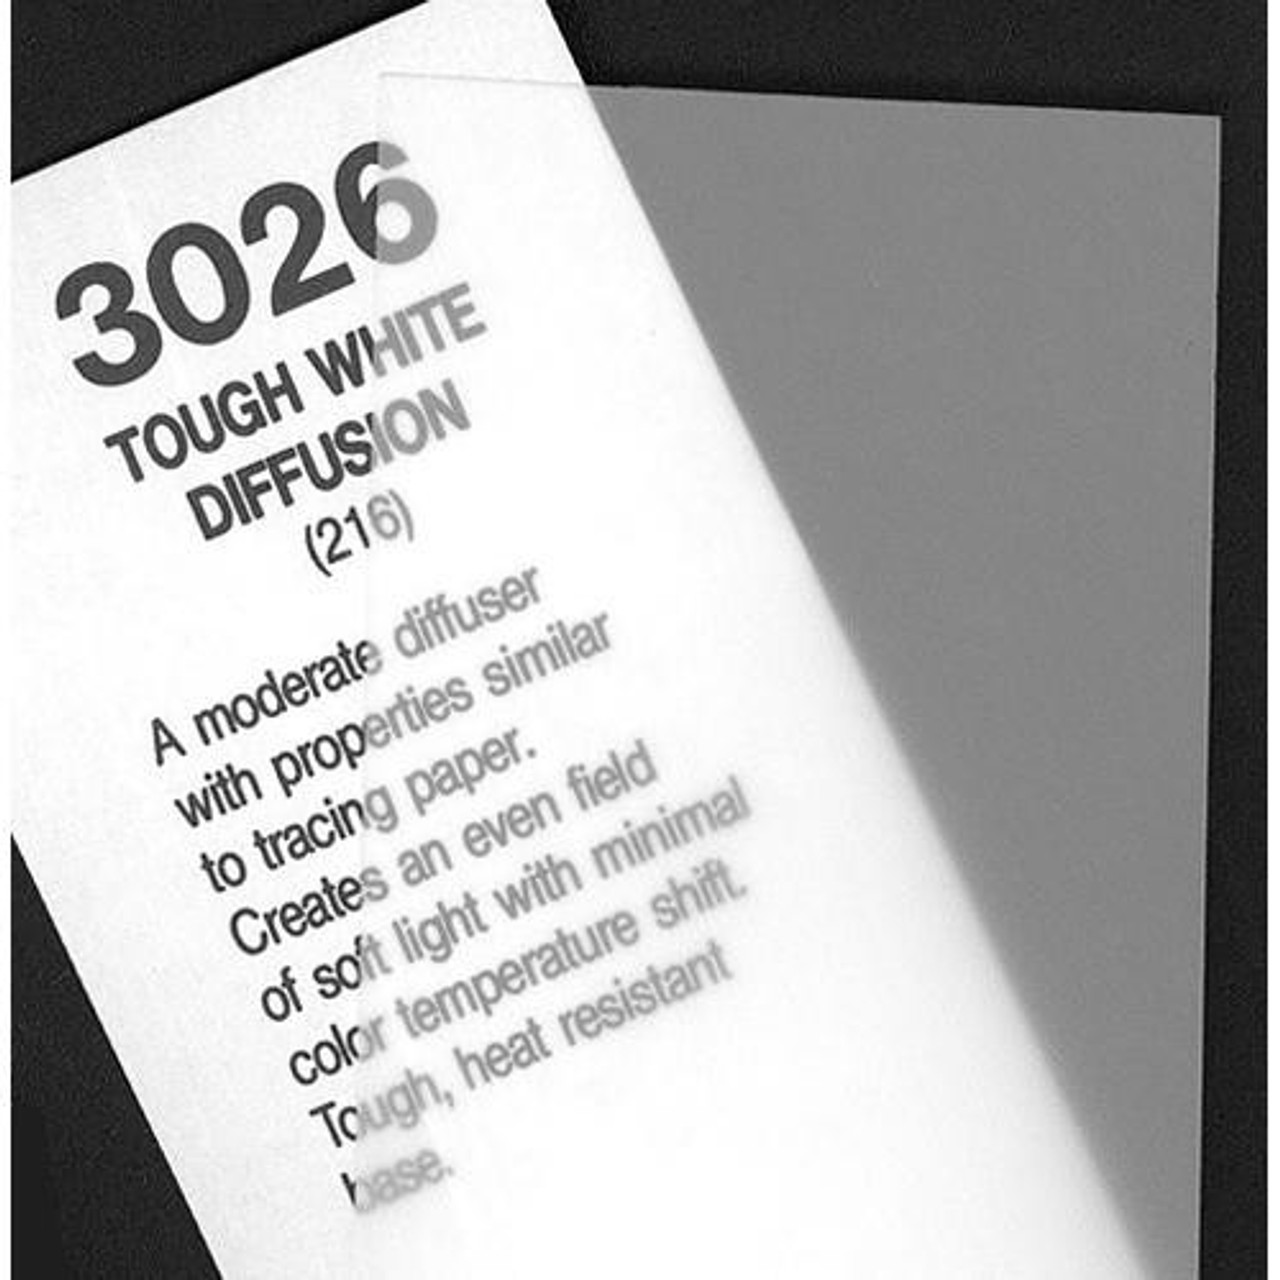 "#3026 Rosco Cinegel Tough White Diffusion, 20x24"", Gels"